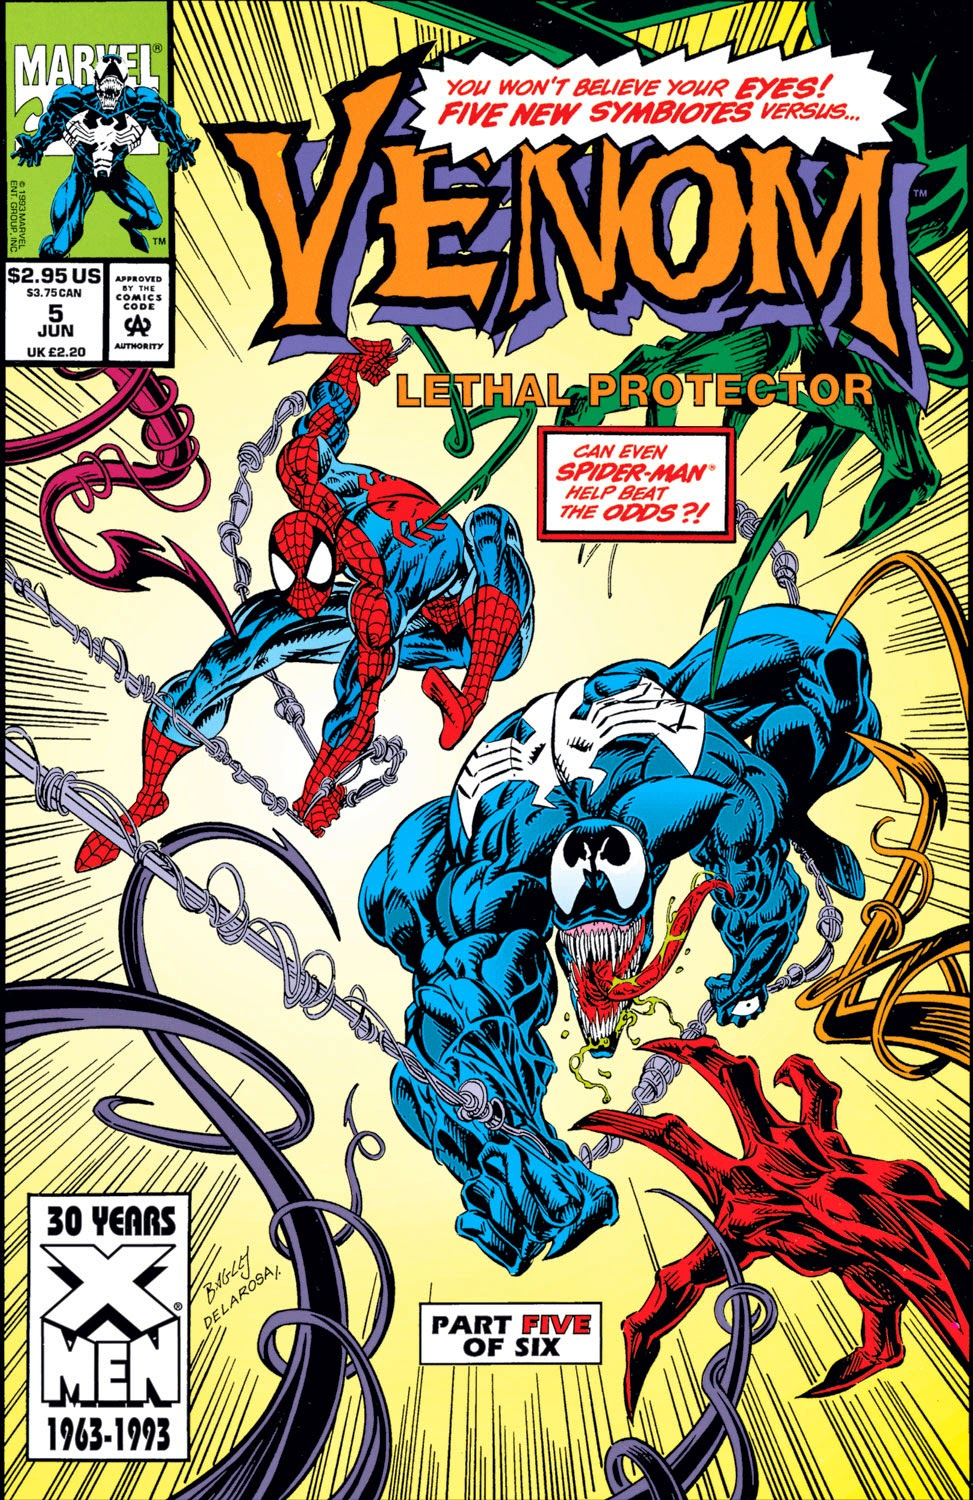 venom lethal protector viewcomic reading comics online for free 2018